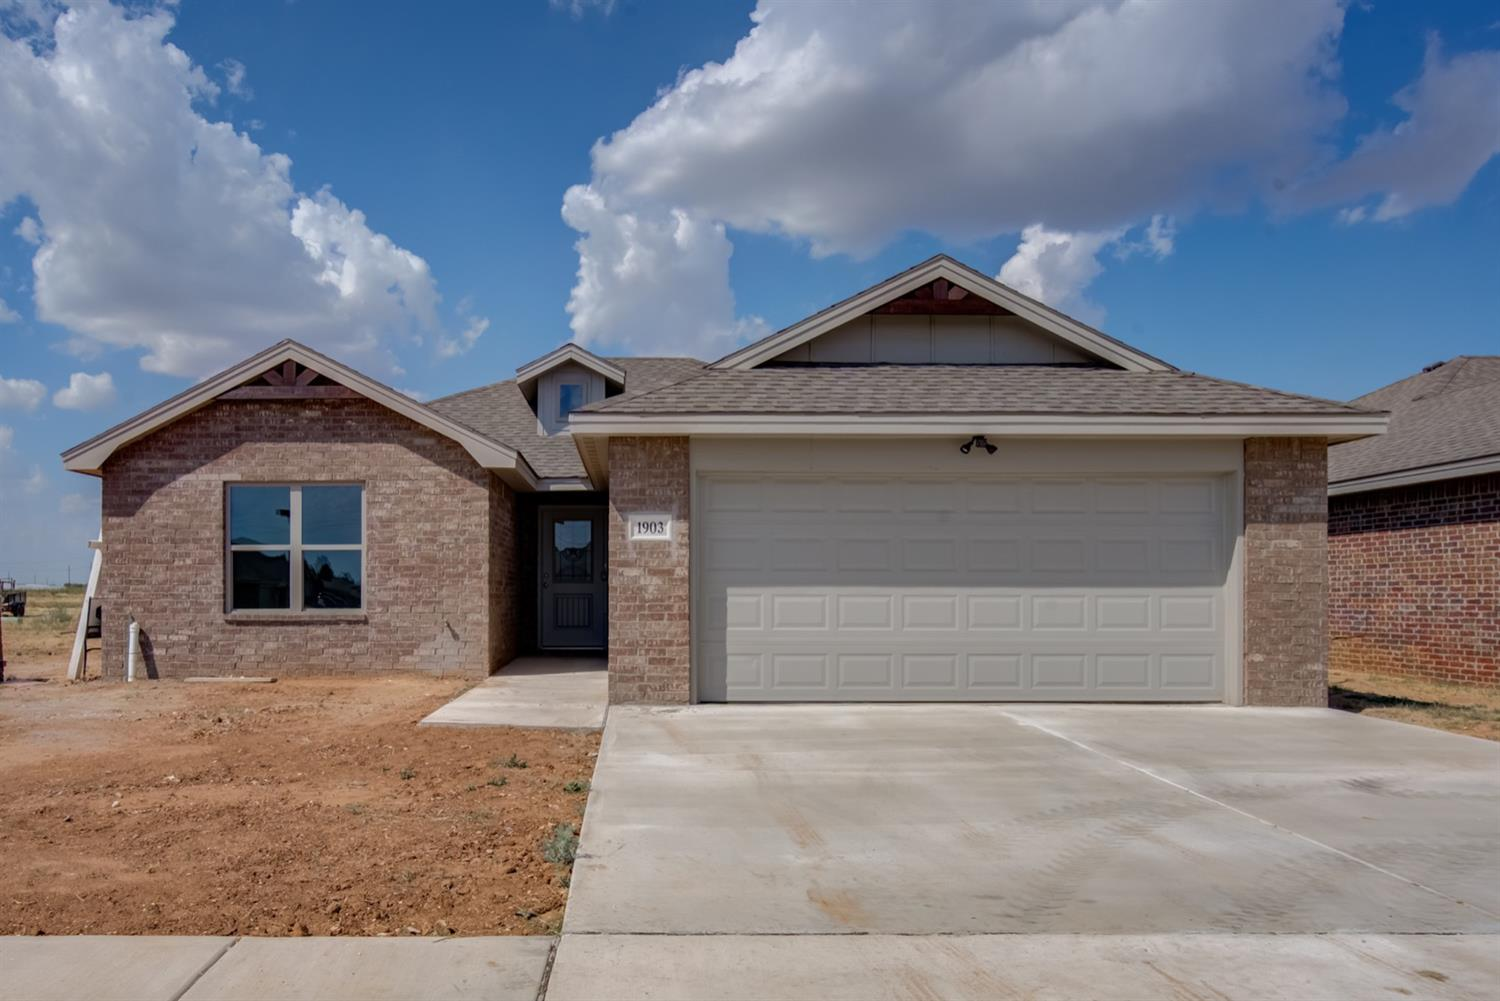 Now offering $5000 toward closing costs! Brand new 3/2/2 built by Mission Homes. The well appointed kitchen has granite counters & appliances that will be installed before closing. This well designed plan offers a spacious Master along with 2 additional bedrooms. You'll also enjoy vinyl plank flooring throughout. Mission Homes founder, Lal Williams, has more than 10 years experience in construction and is now bringing his passion for construction and mission work to the home building industry.